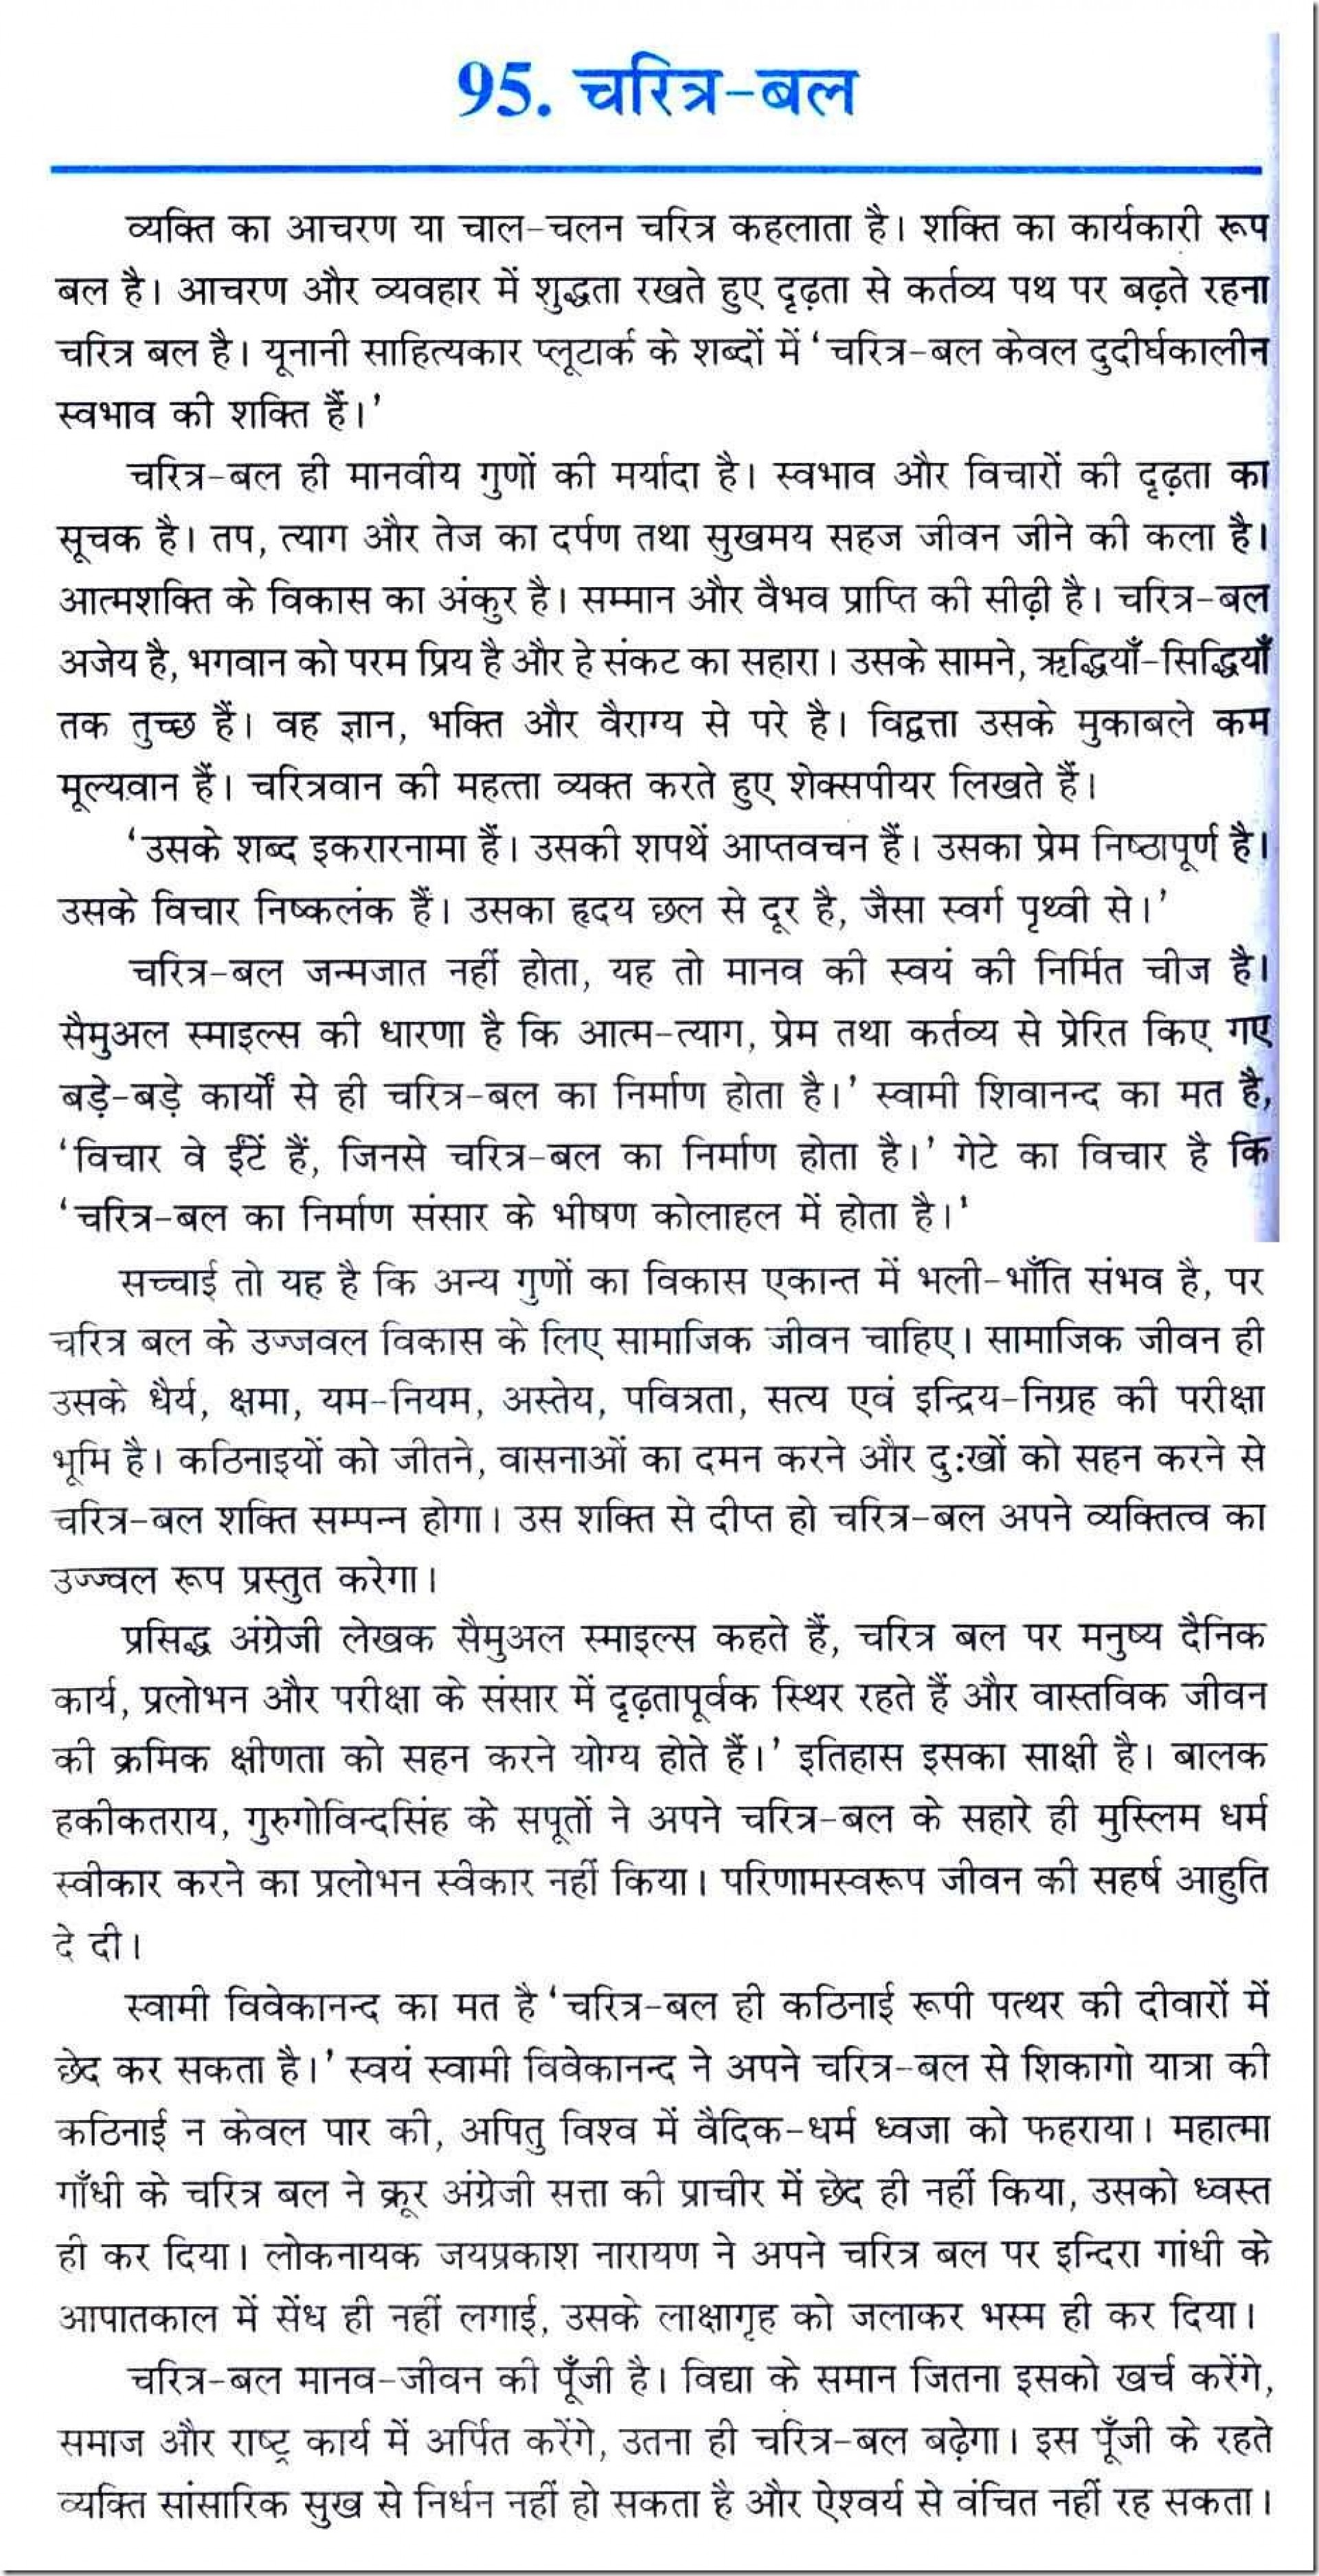 004 Essay On Character In Hindi Macbeth Imagery Essays Thumb Easy Building Pdf Need Of The Day By Swami Vivekananda Urdu Free Is Essence Education Speech Frightening My Favourite Cartoon Shin Chan Development Importance Letter 1920